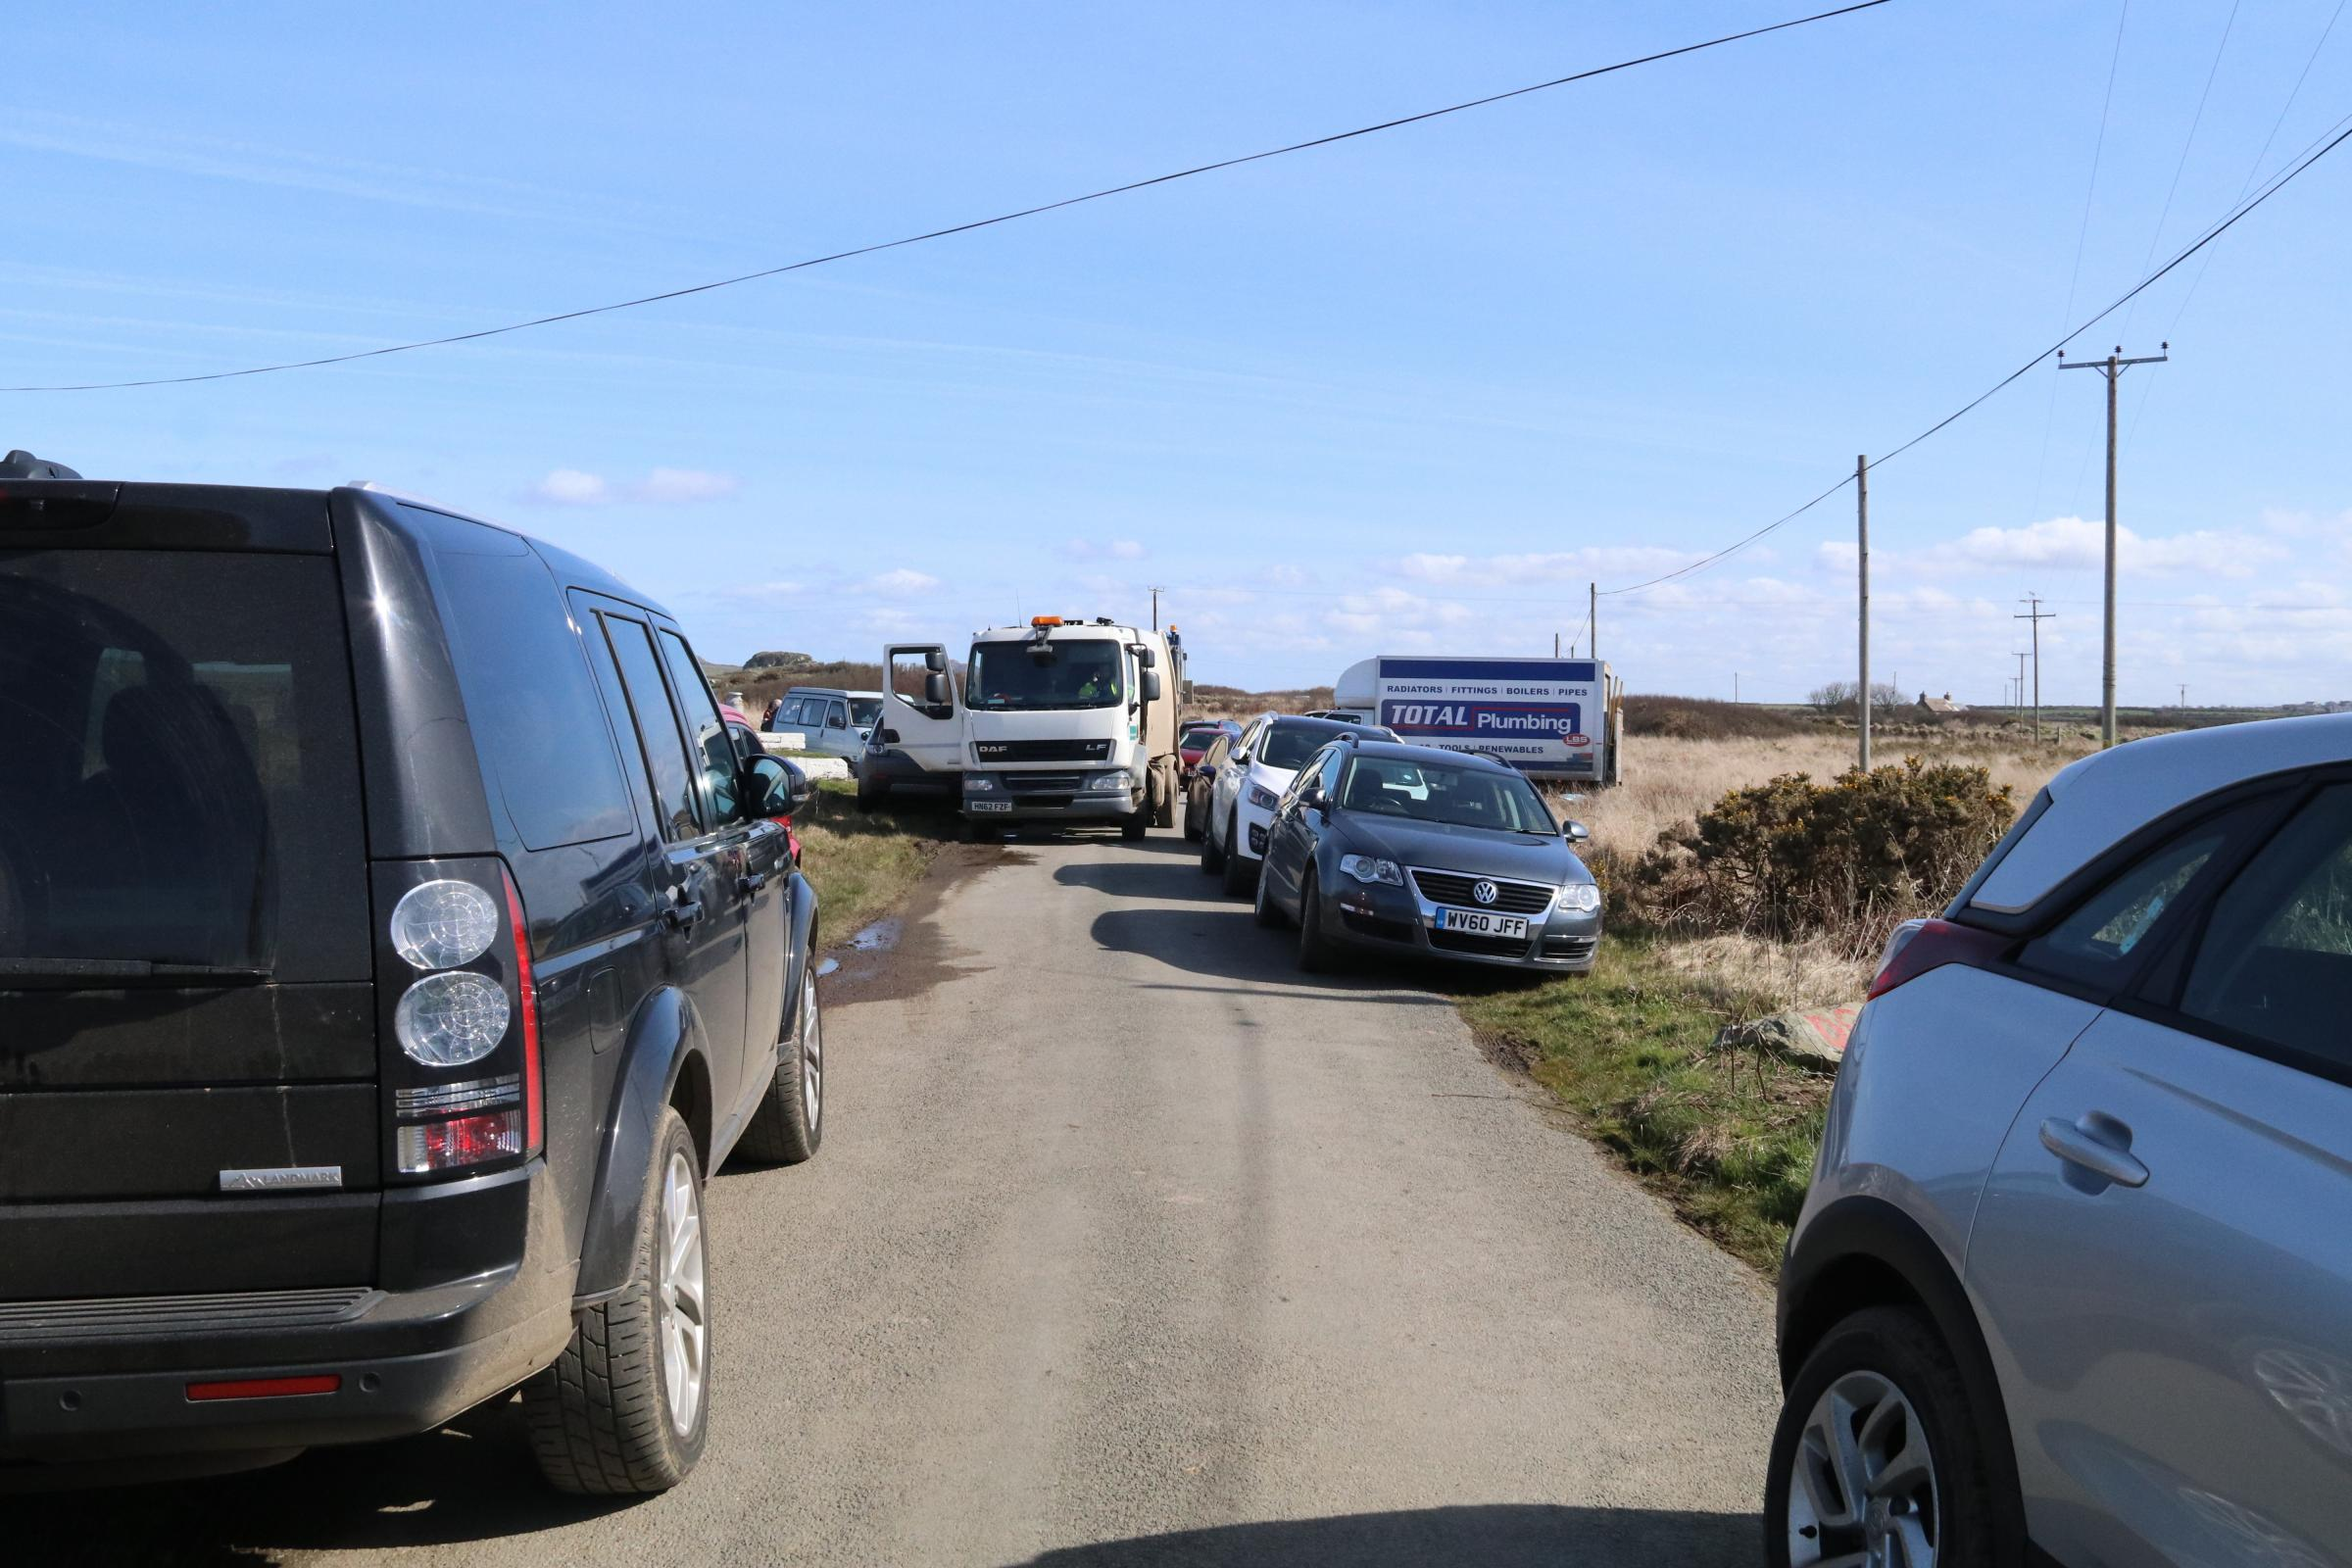 There was car parking chaos around St Justinians following the closure of the car park.